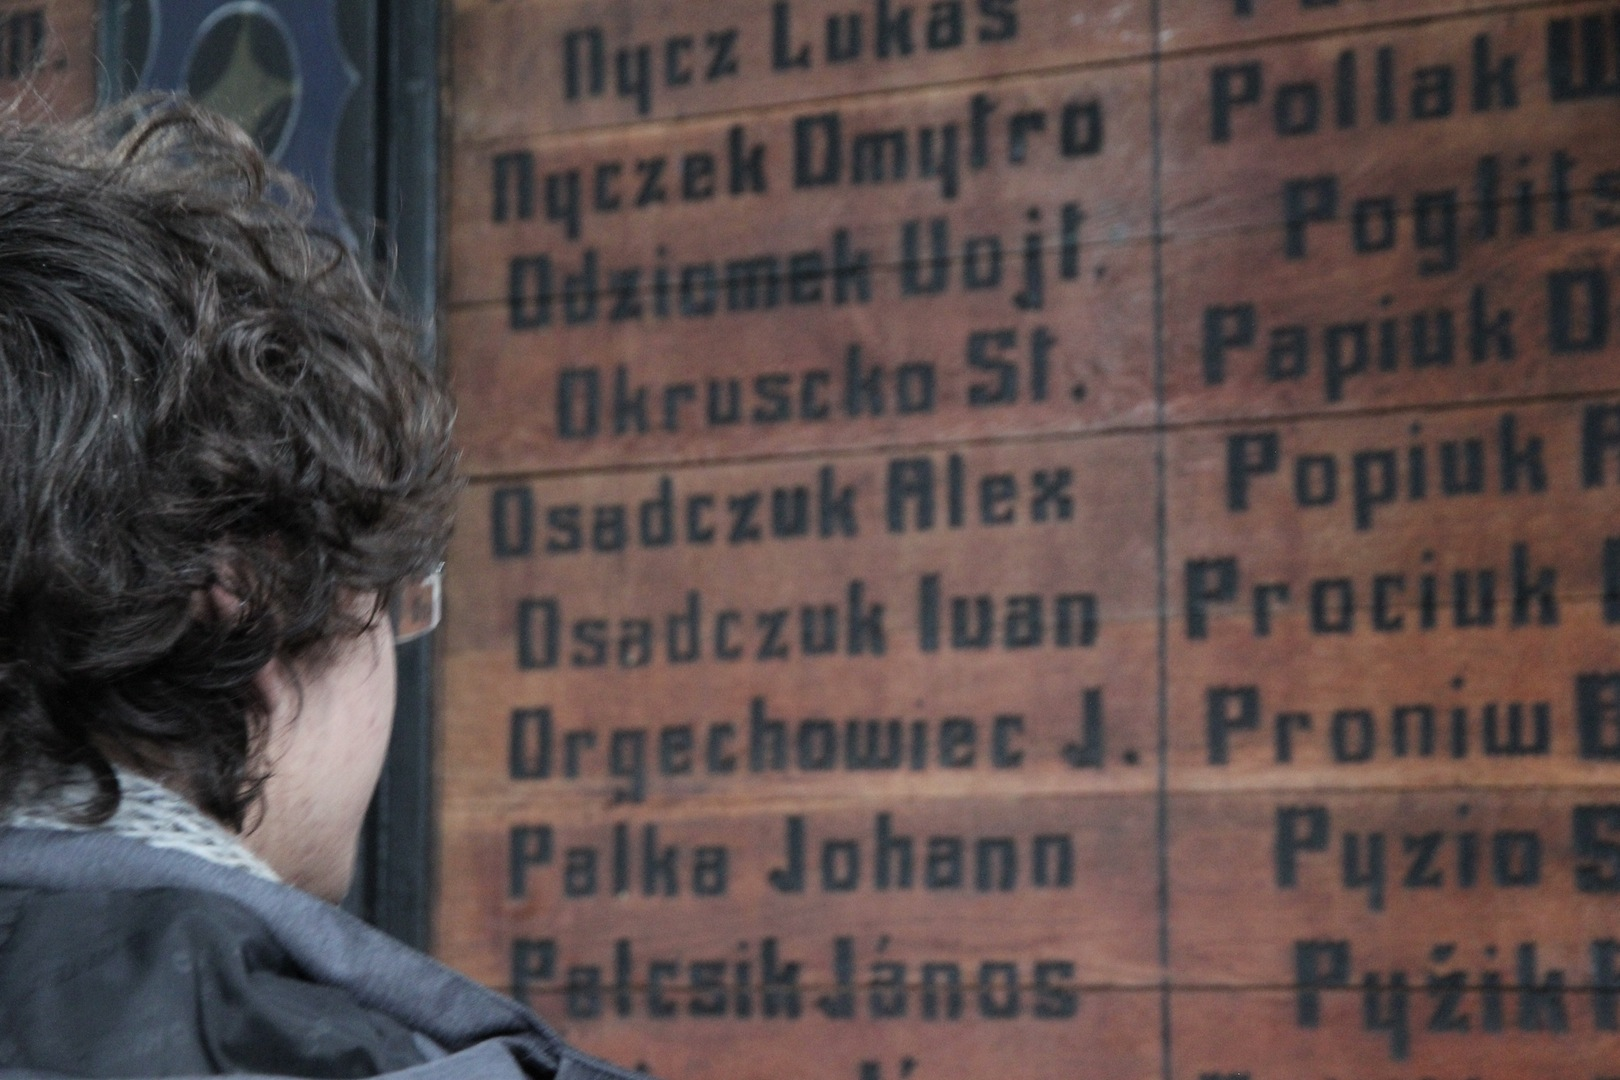 Looking for Polish names